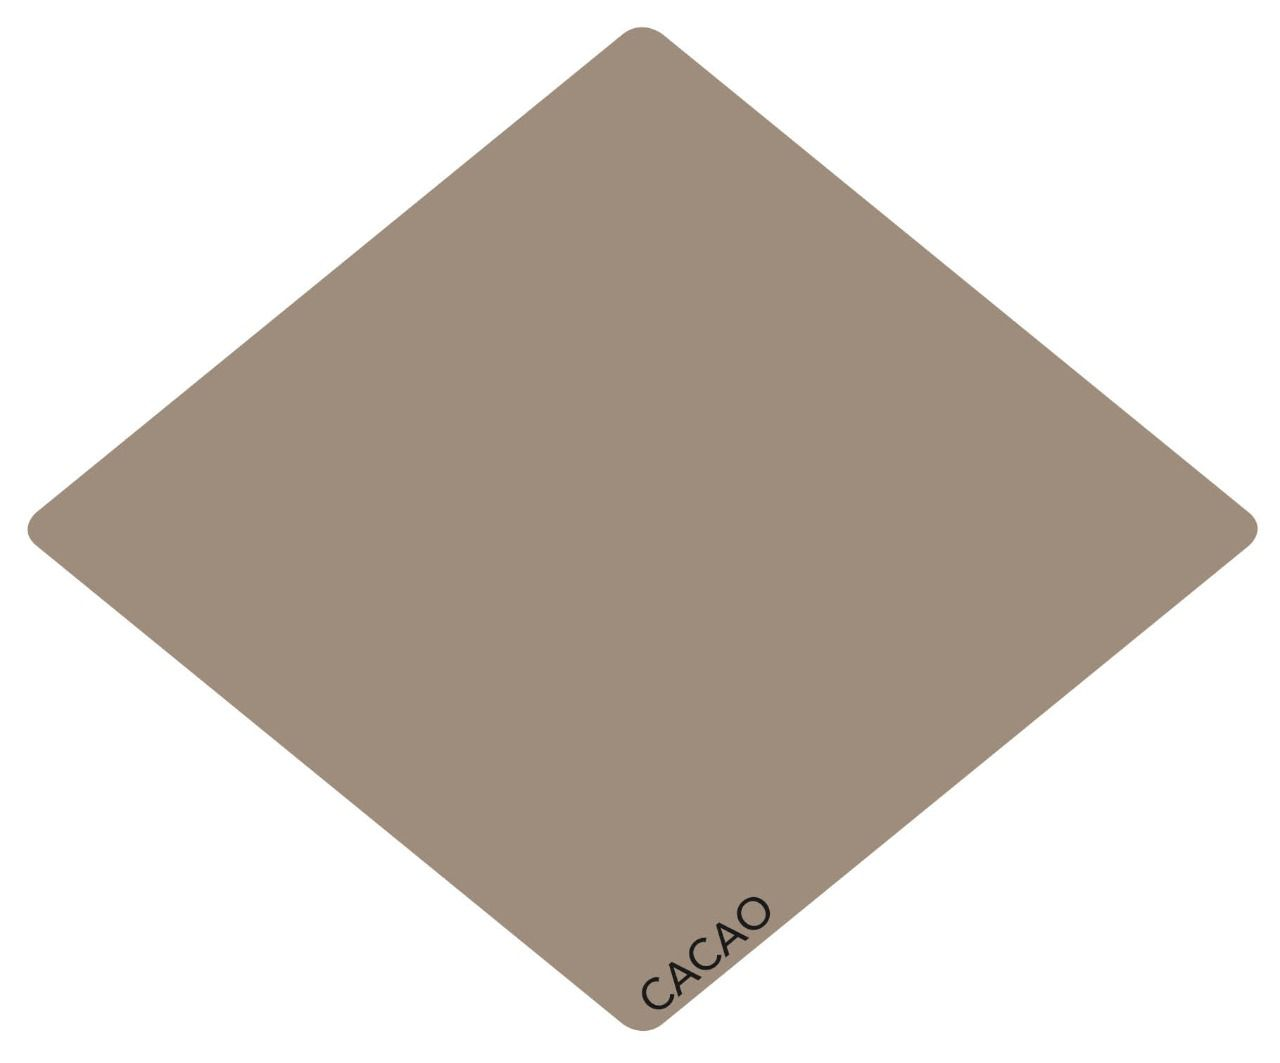 ColorVelours CACAO